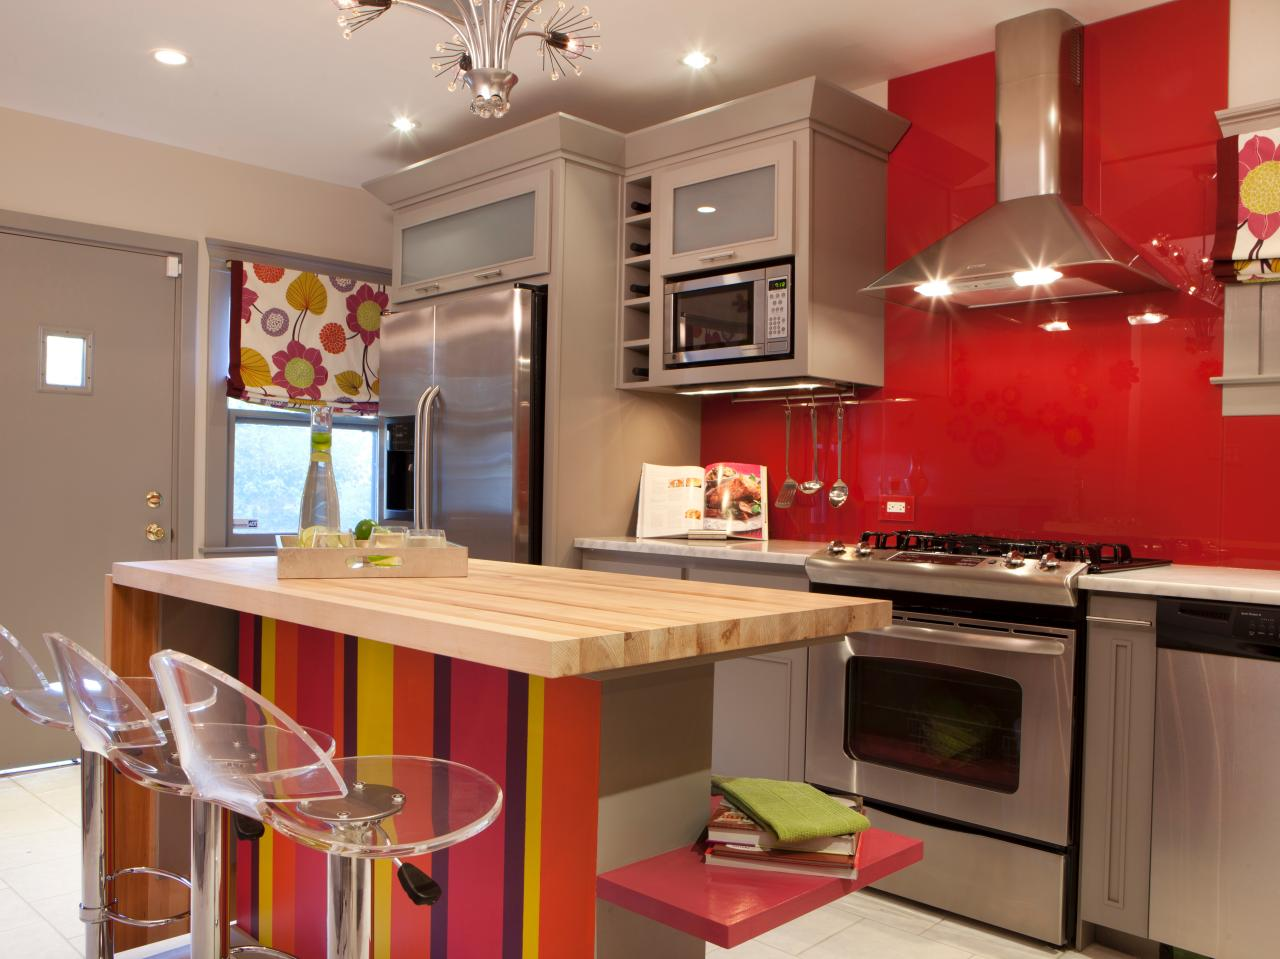 Painting kitchen islands pictures ideas tips from hgtv - Decoraciones para cocinas ...